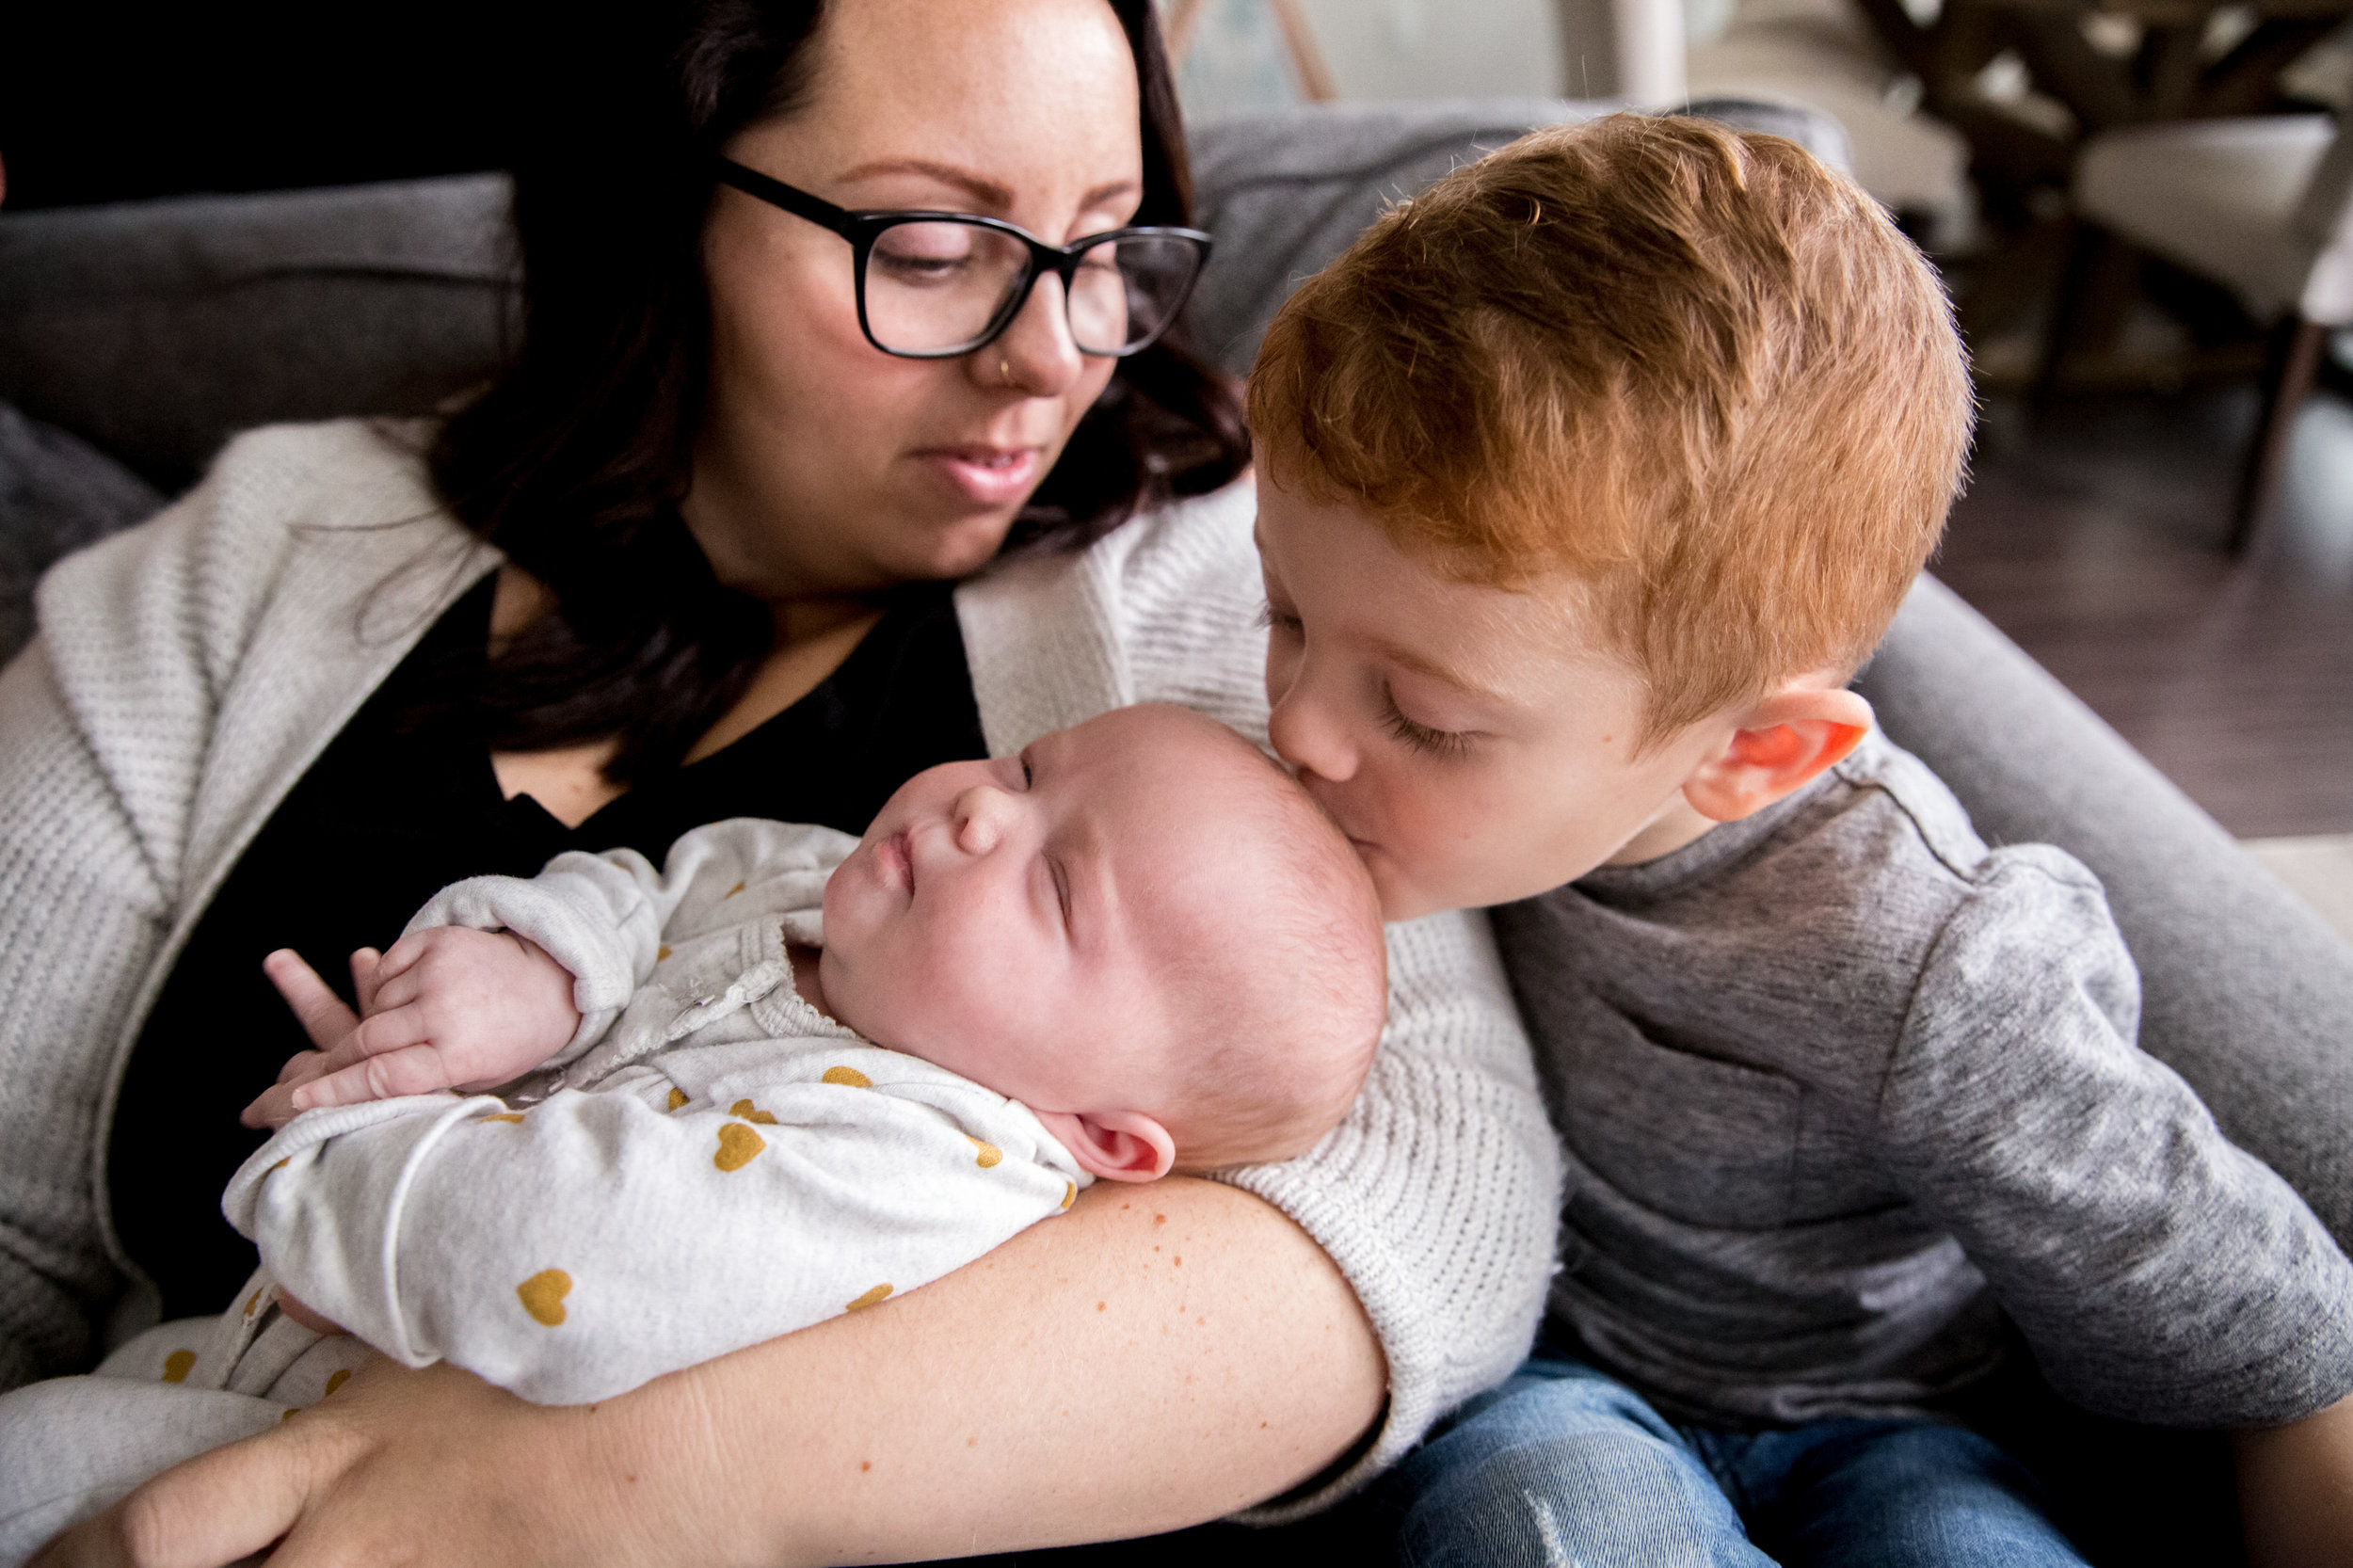 brother kissing baby sister with mom holding baby in vancouver canada